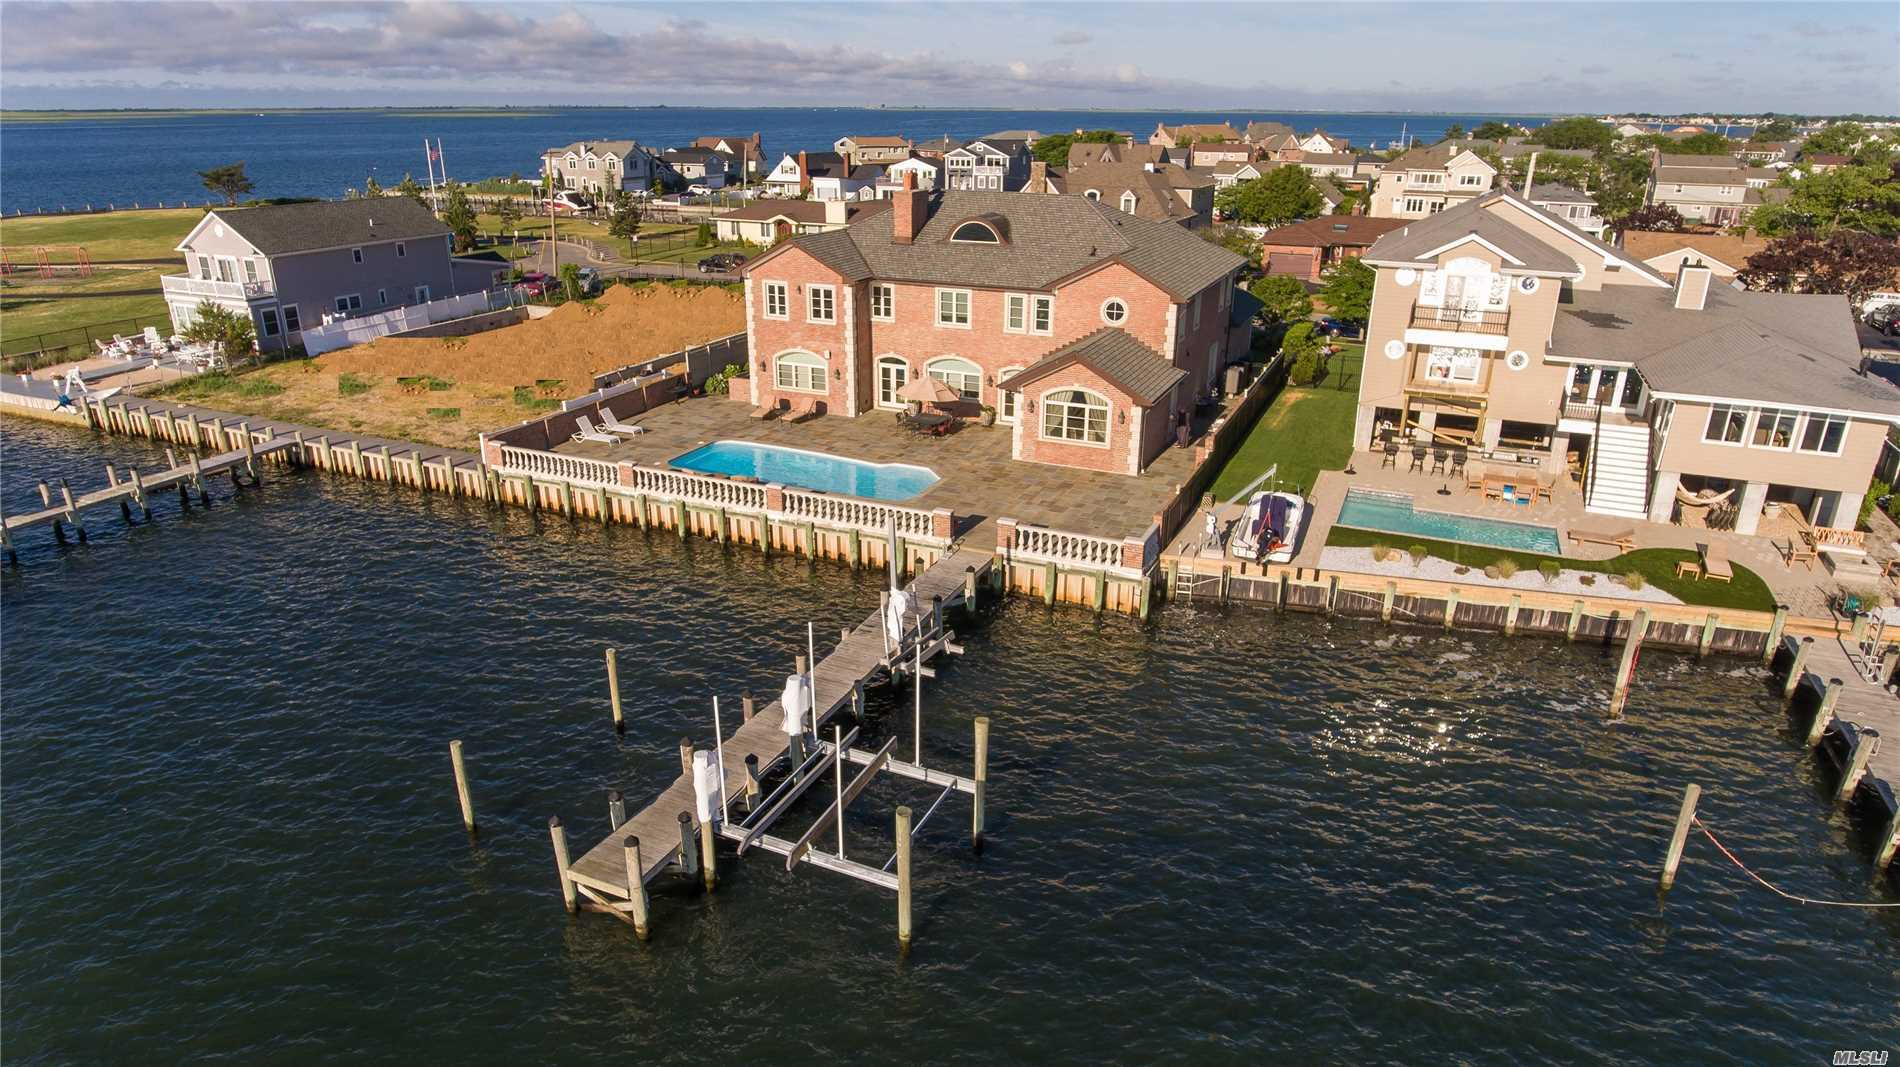 Majestic Brick Bayfront Home Built In 2008 With Every Amenity Known To Man. No Expense Spared & Only The Finest Materials Used. Savor The Beautiful Bayviews & Store Your Boat & Jet Ski Safely On The Lift On The 61 Foot Pier Then Take A Dip In The Saltwater Pool. Livin' L A R G E ! ! !